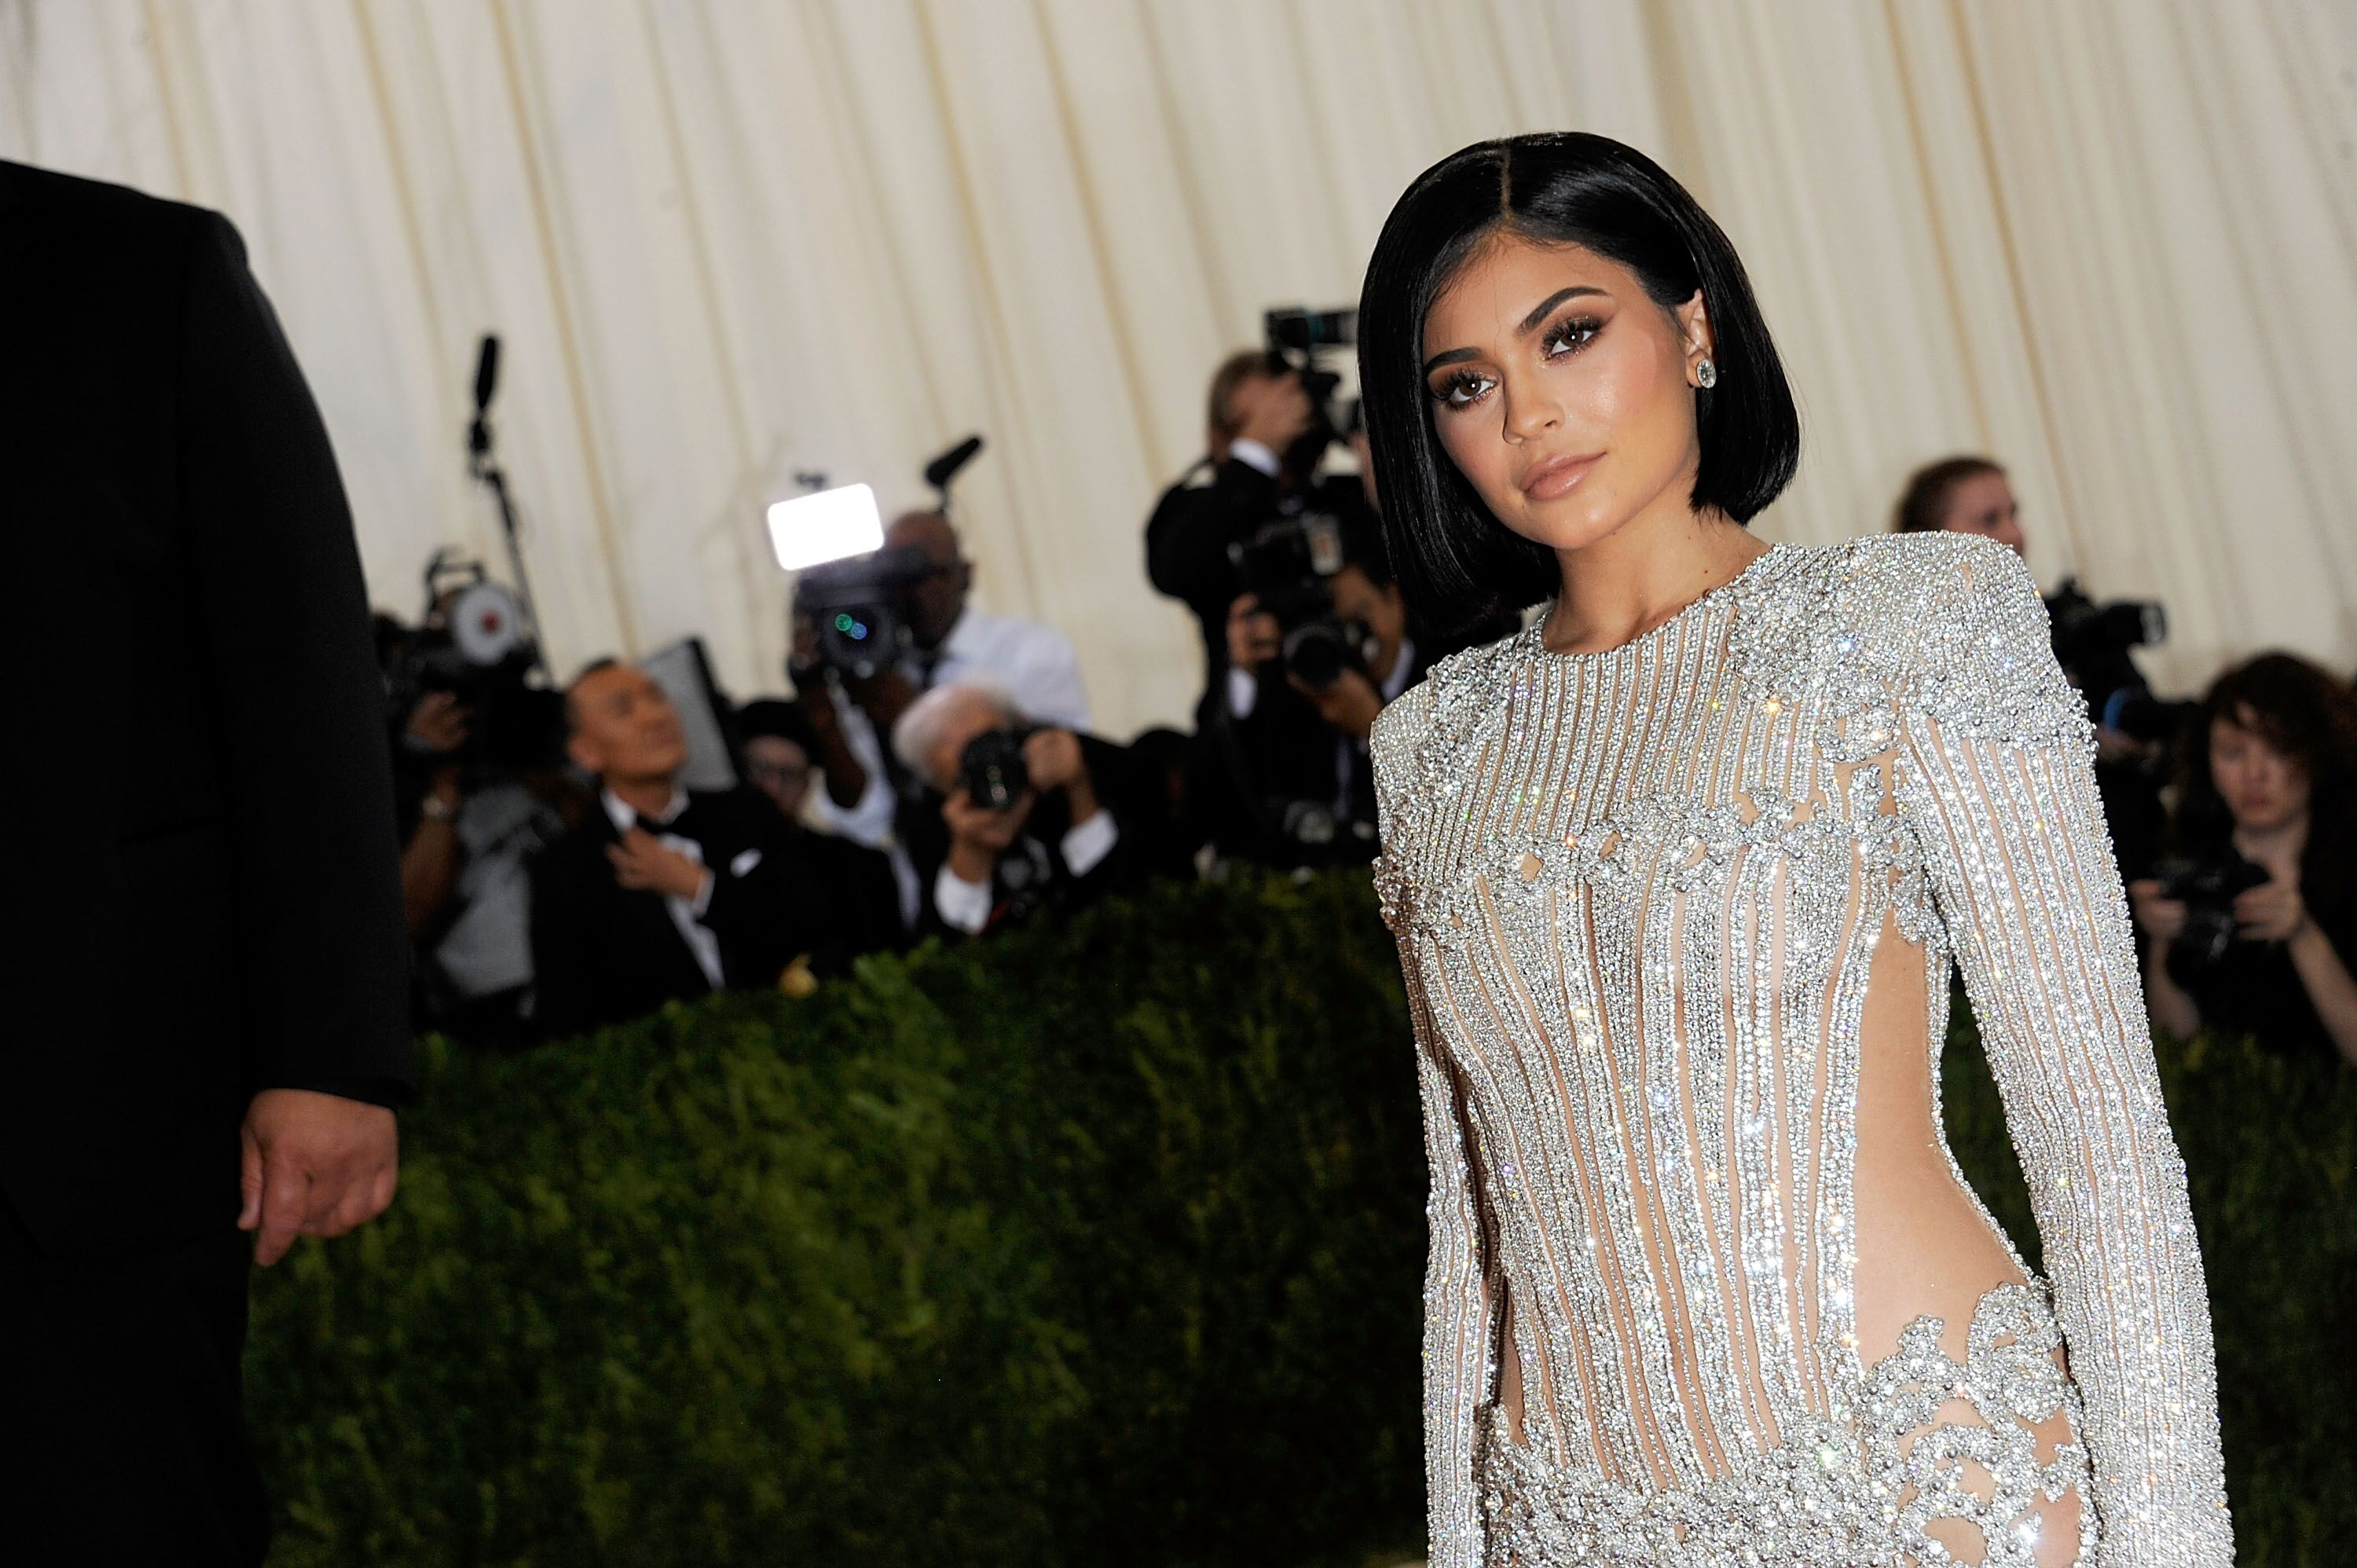 Kylie Jenner at the Costume Institute Gala | Photo: Rabbani and Solimene Photography/Getty Images